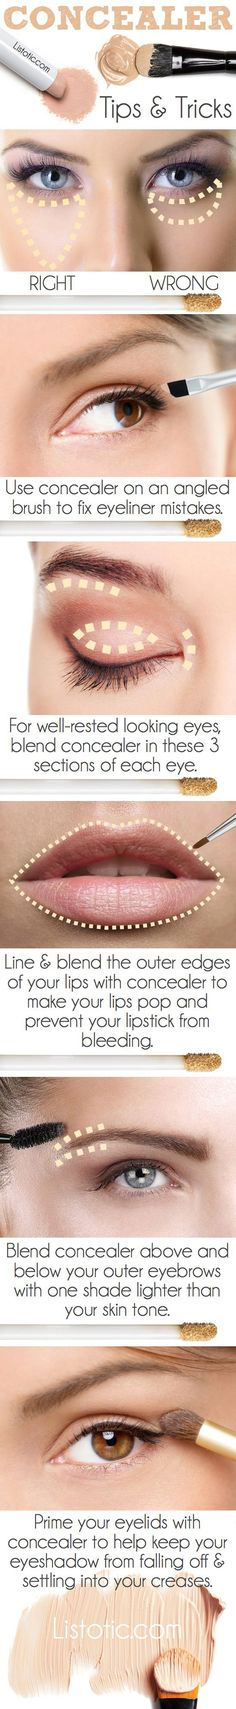 20 Makeup Tricks And Tips To Make You Look Less Tired